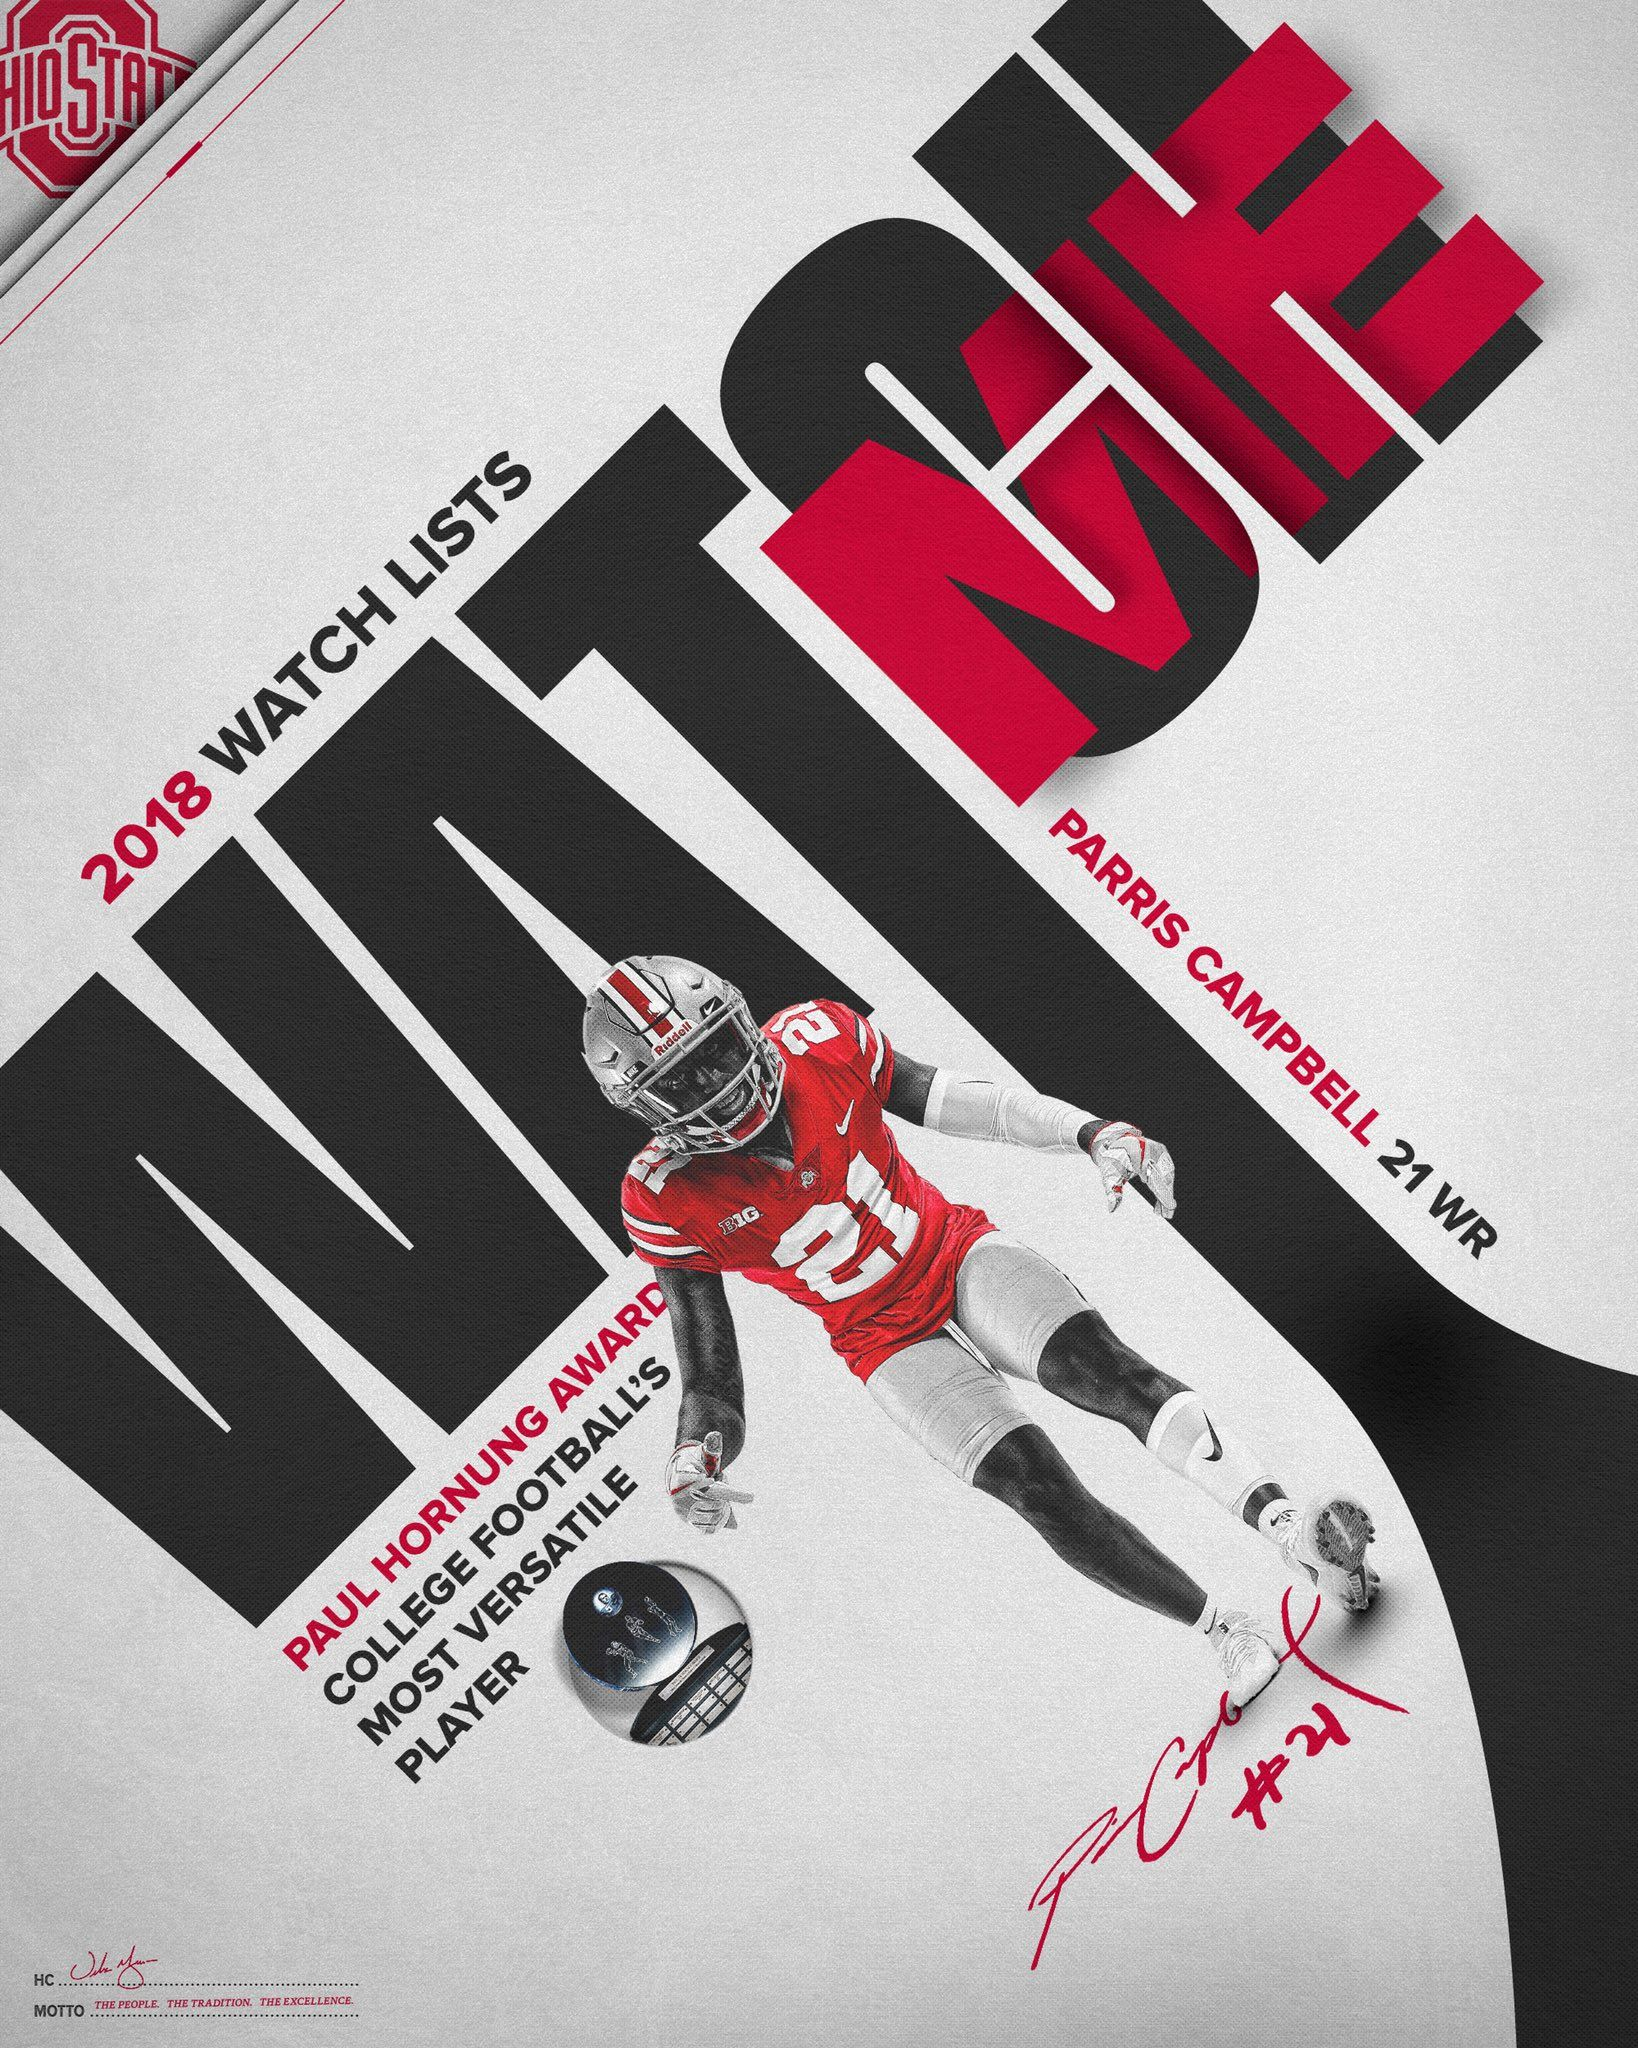 2 Twitter Parris Campbell Football Program The Ohio State University Ohio State